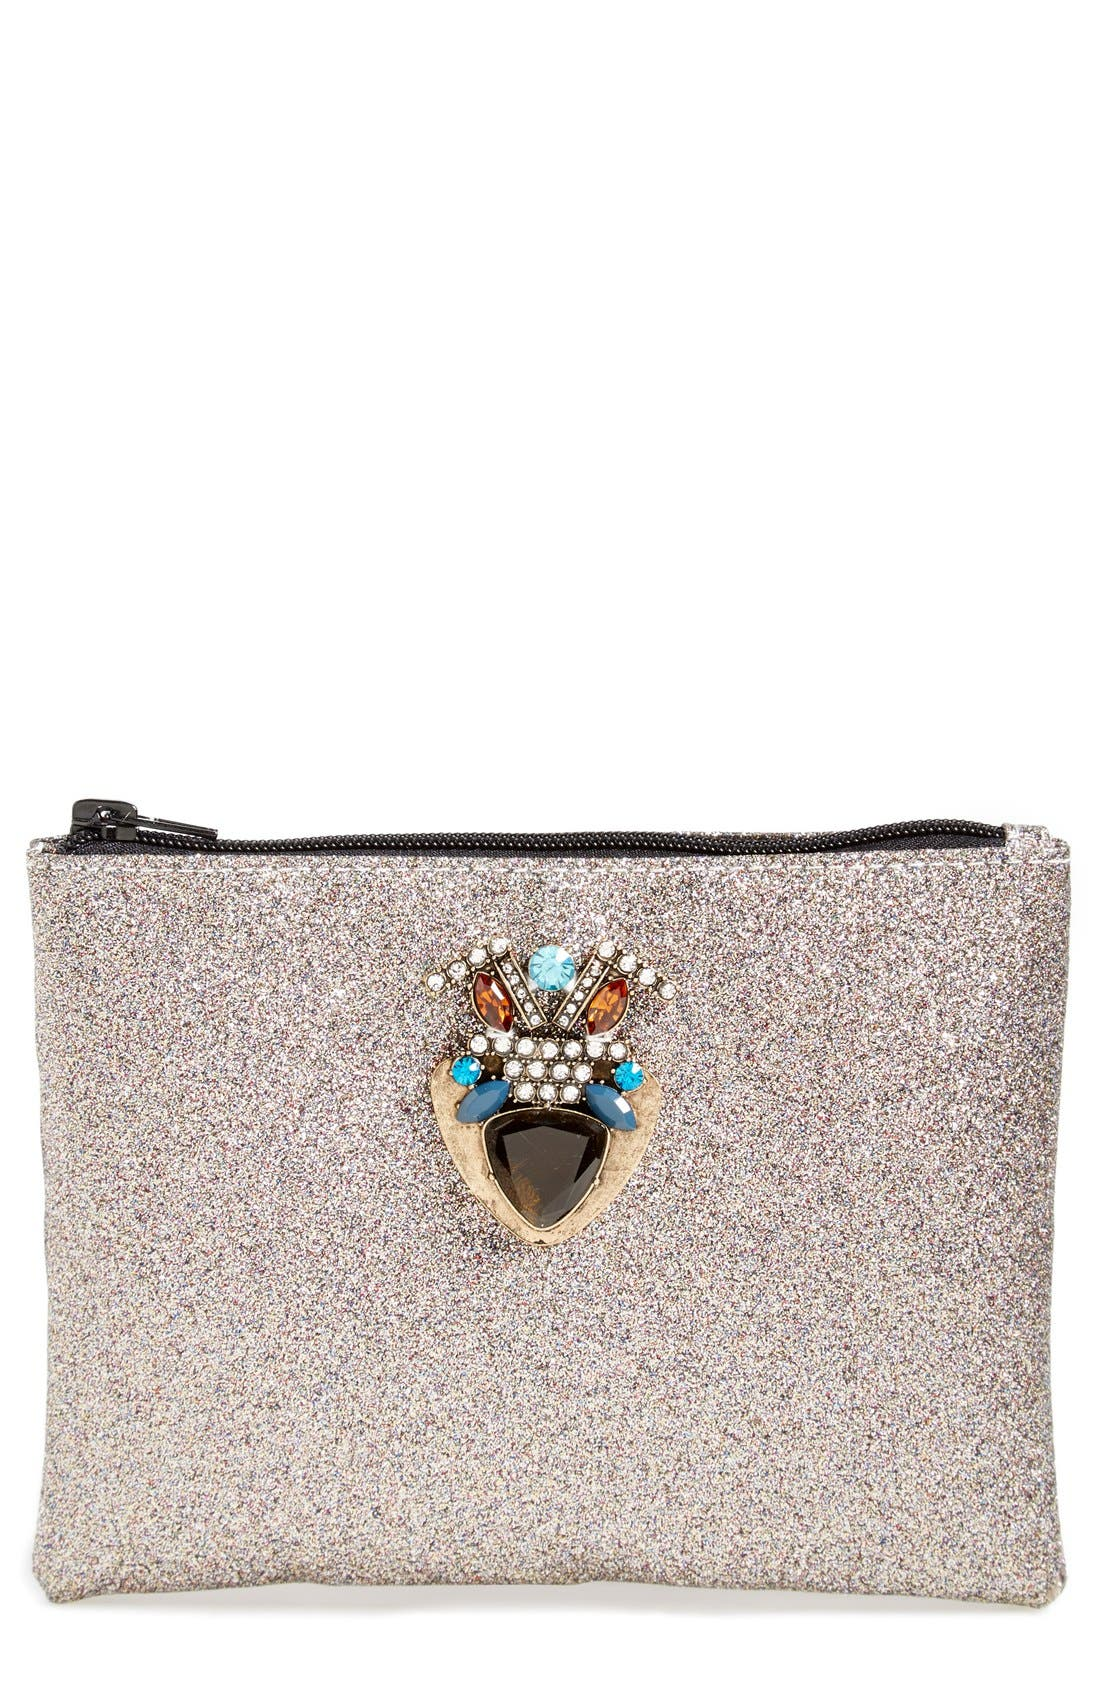 Alternate Image 1 Selected - Berry Embellished Glitter Clutch